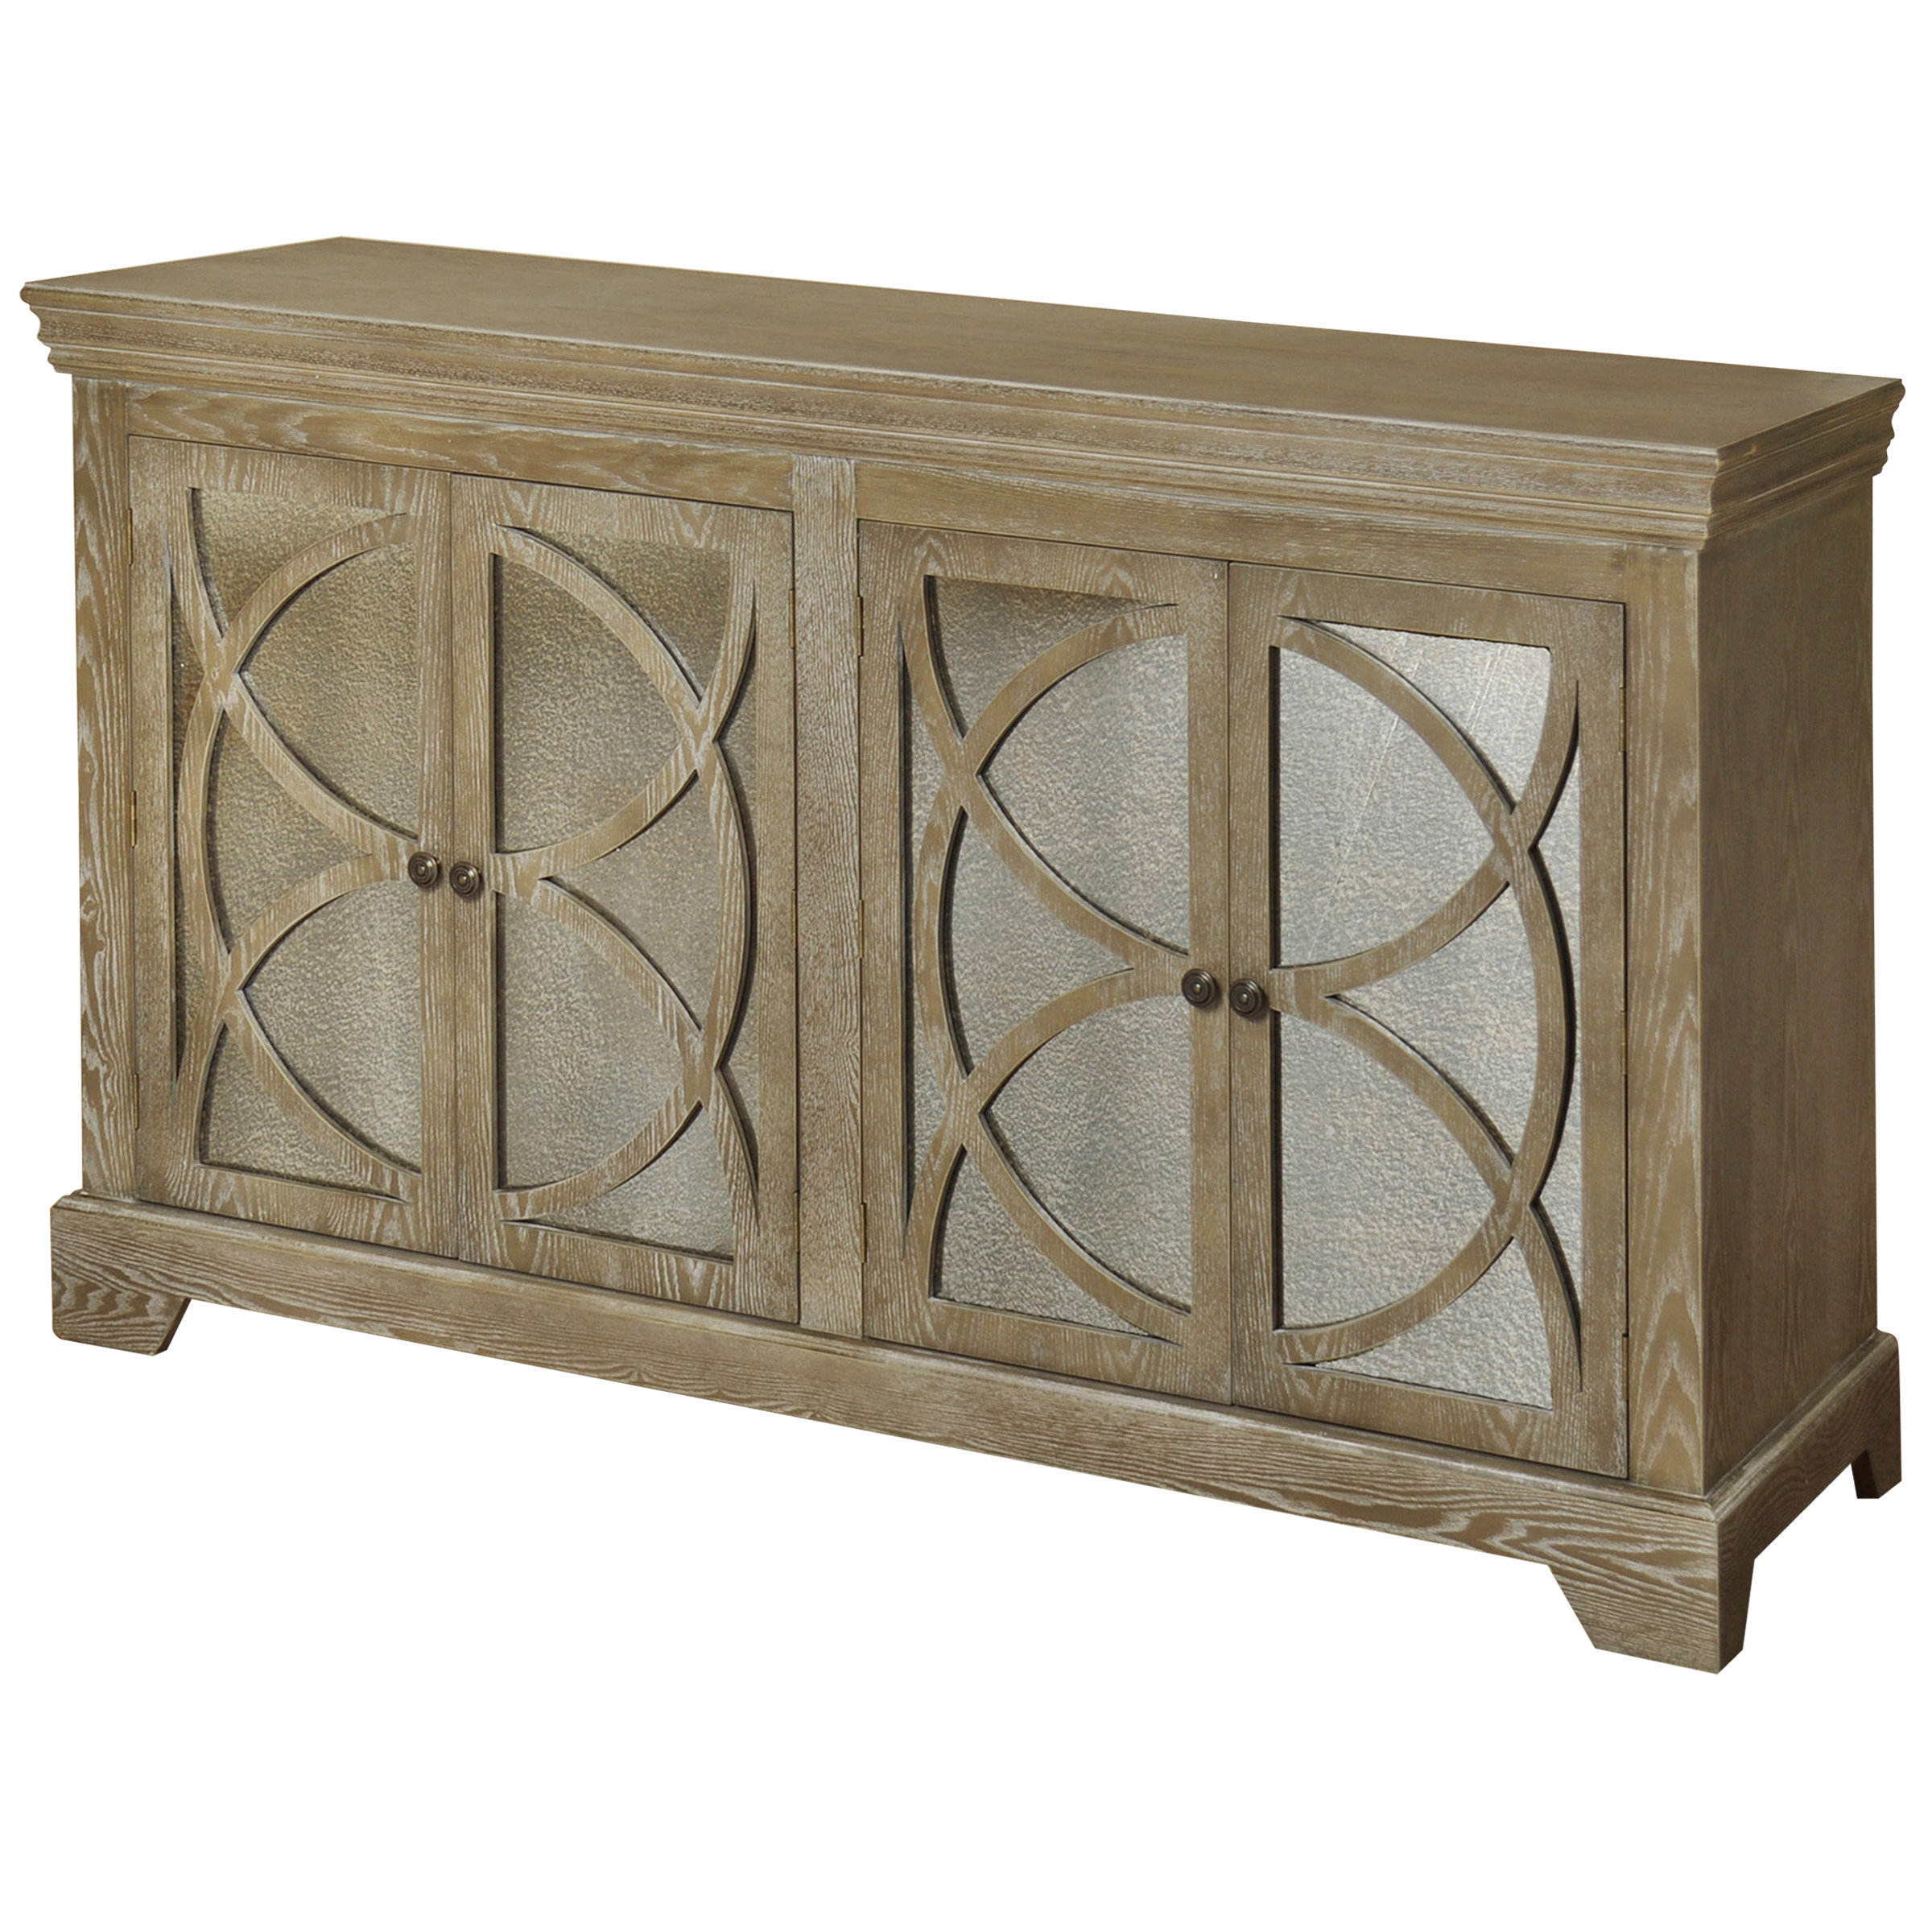 60 Inch Credenza | Wayfair Pertaining To Most Up To Date Senda Credenzas (#4 of 20)